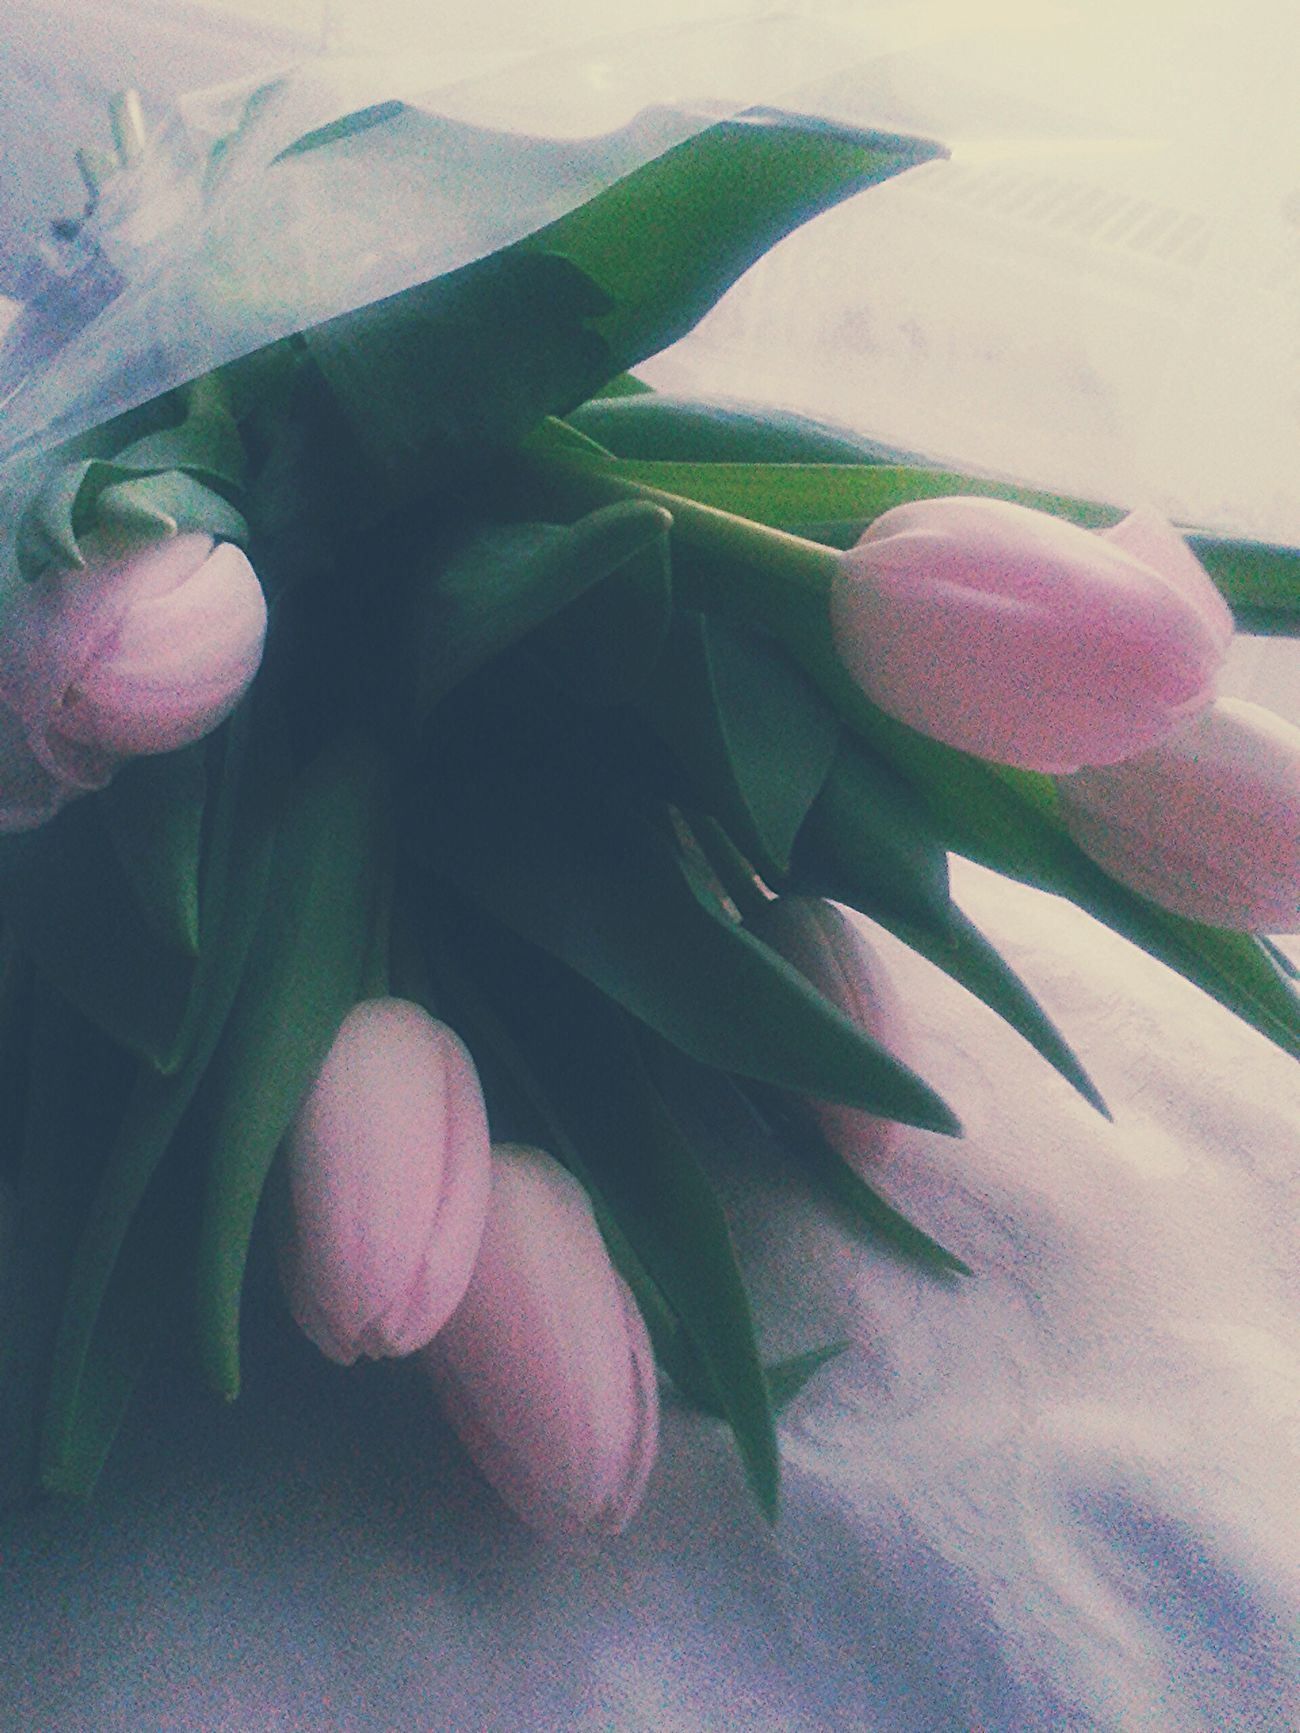 Flowers Spring Has Arrived Spring Flowers Boyfriend❤